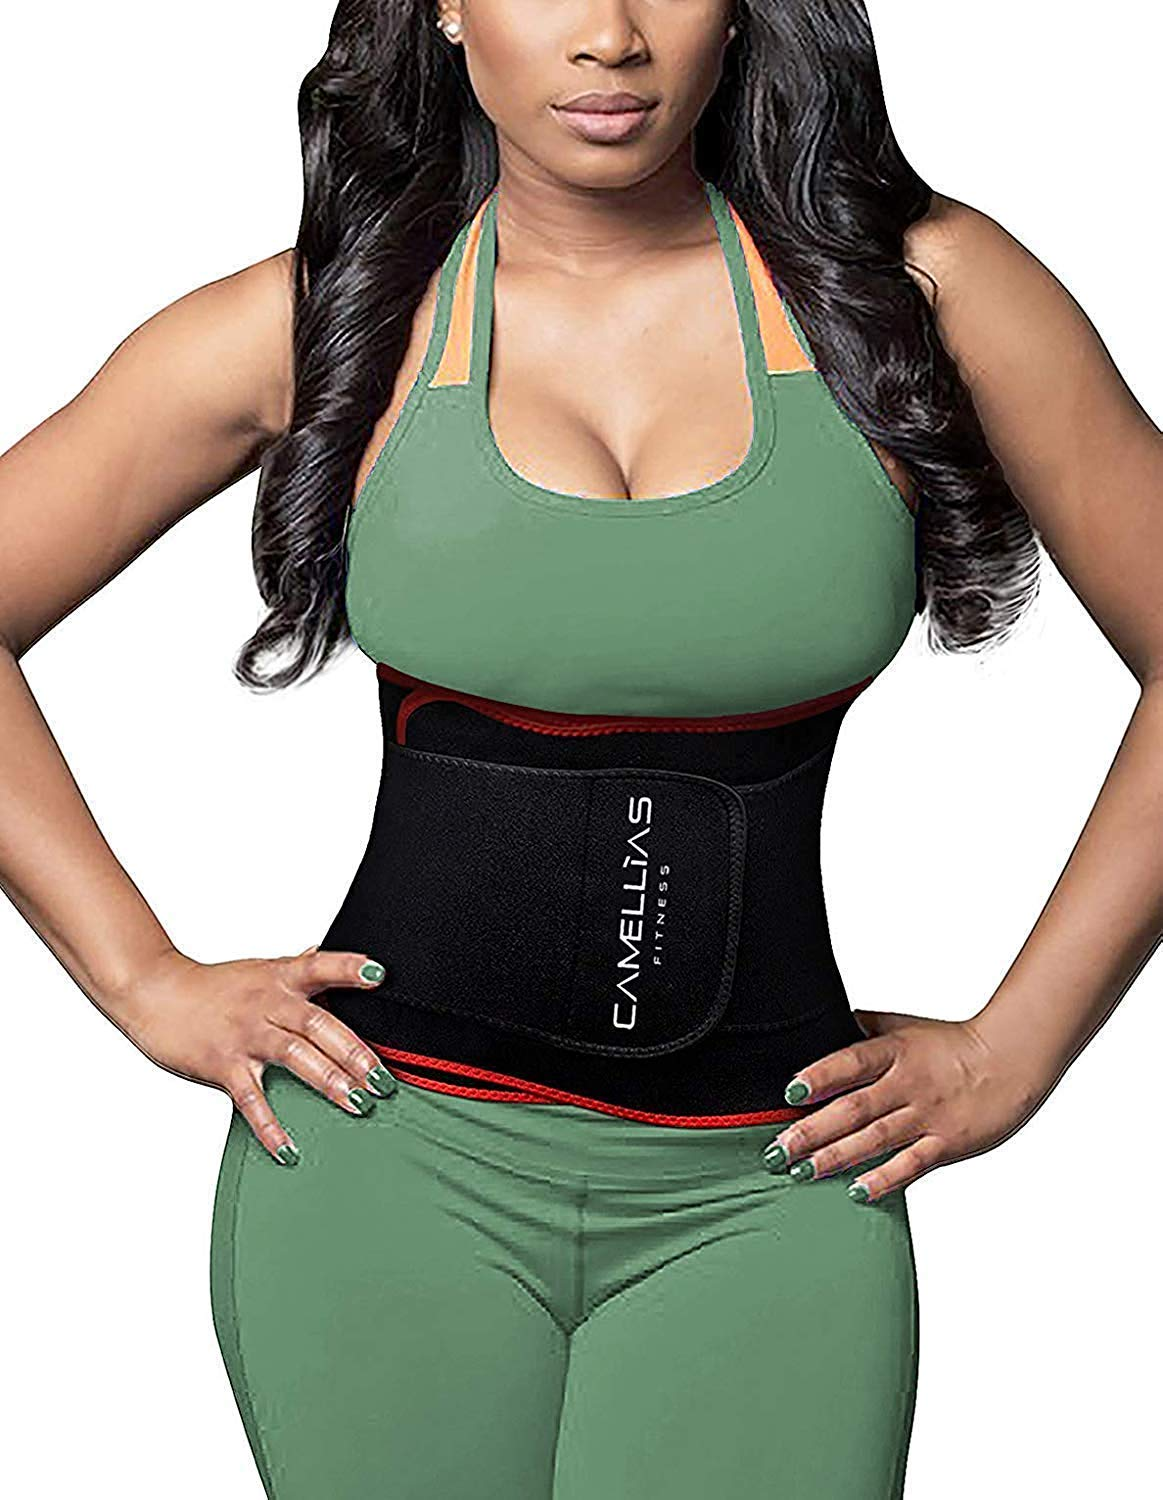 8aff7a1949 SHAPERX Waist Trainer Trimmer Slimming Belt Hot Neoprene Sauna Sweat Belly  Band Weight Loss Burner Stomach Wrap